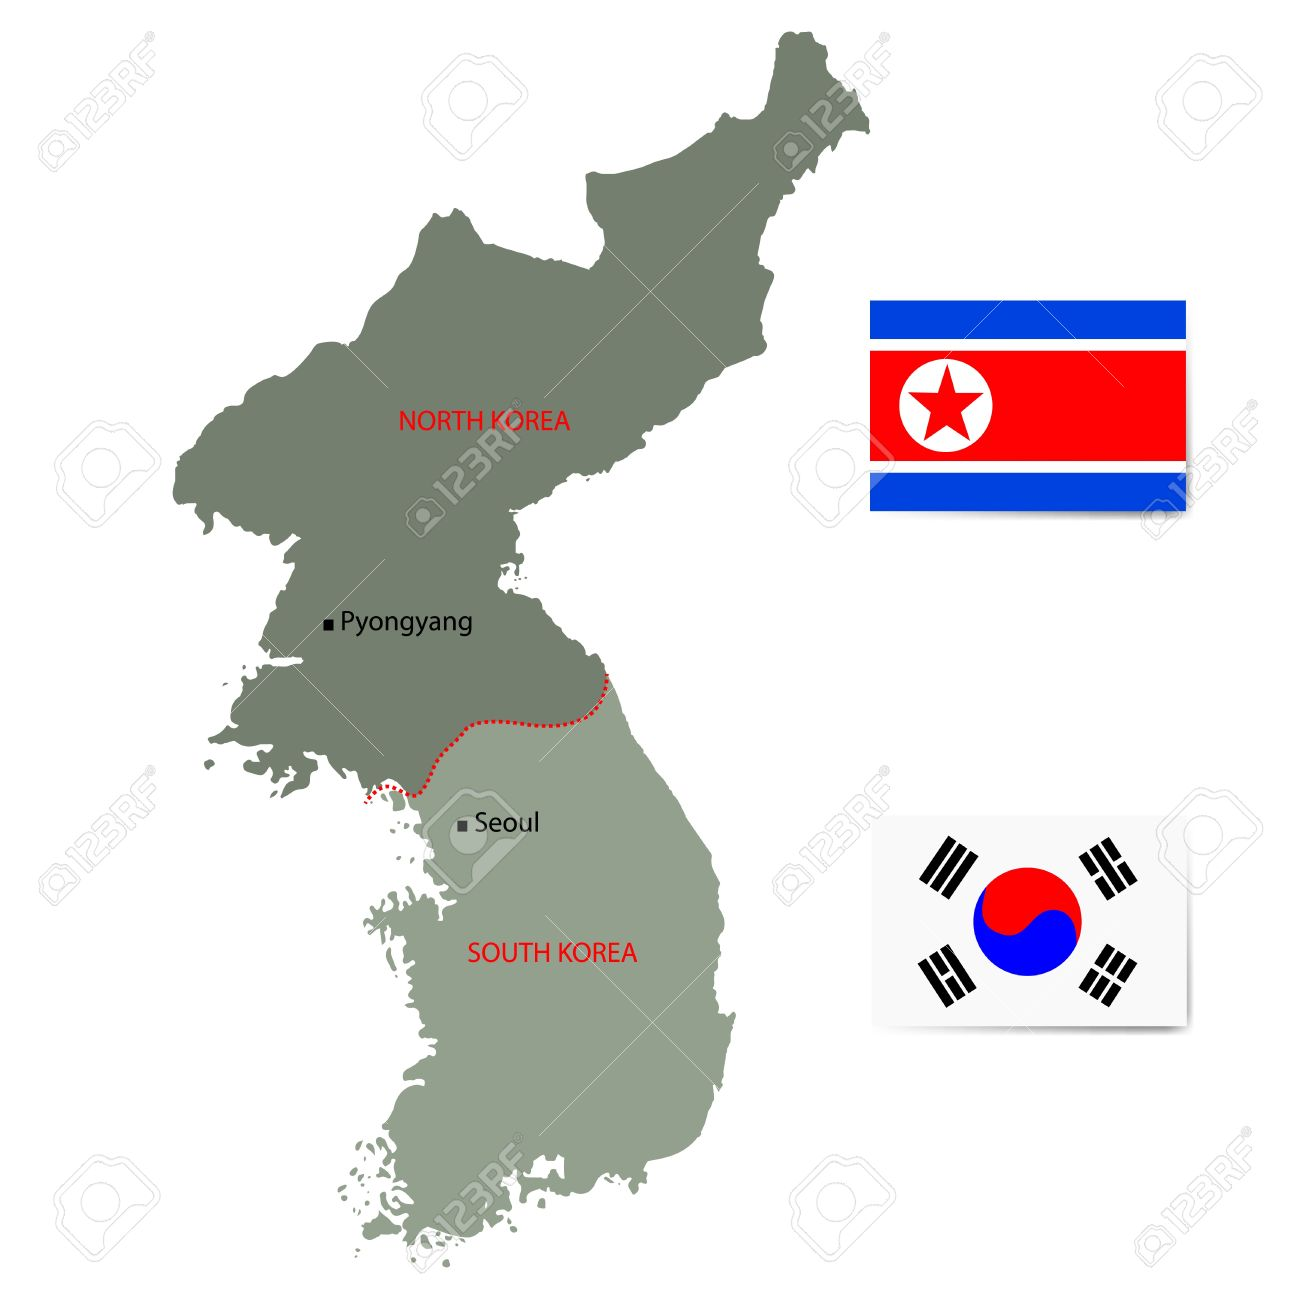 North And South Korea Map With Flags Isolated On White Background Royalty Free Cliparts Vectors And Stock Illustration Image 19165822